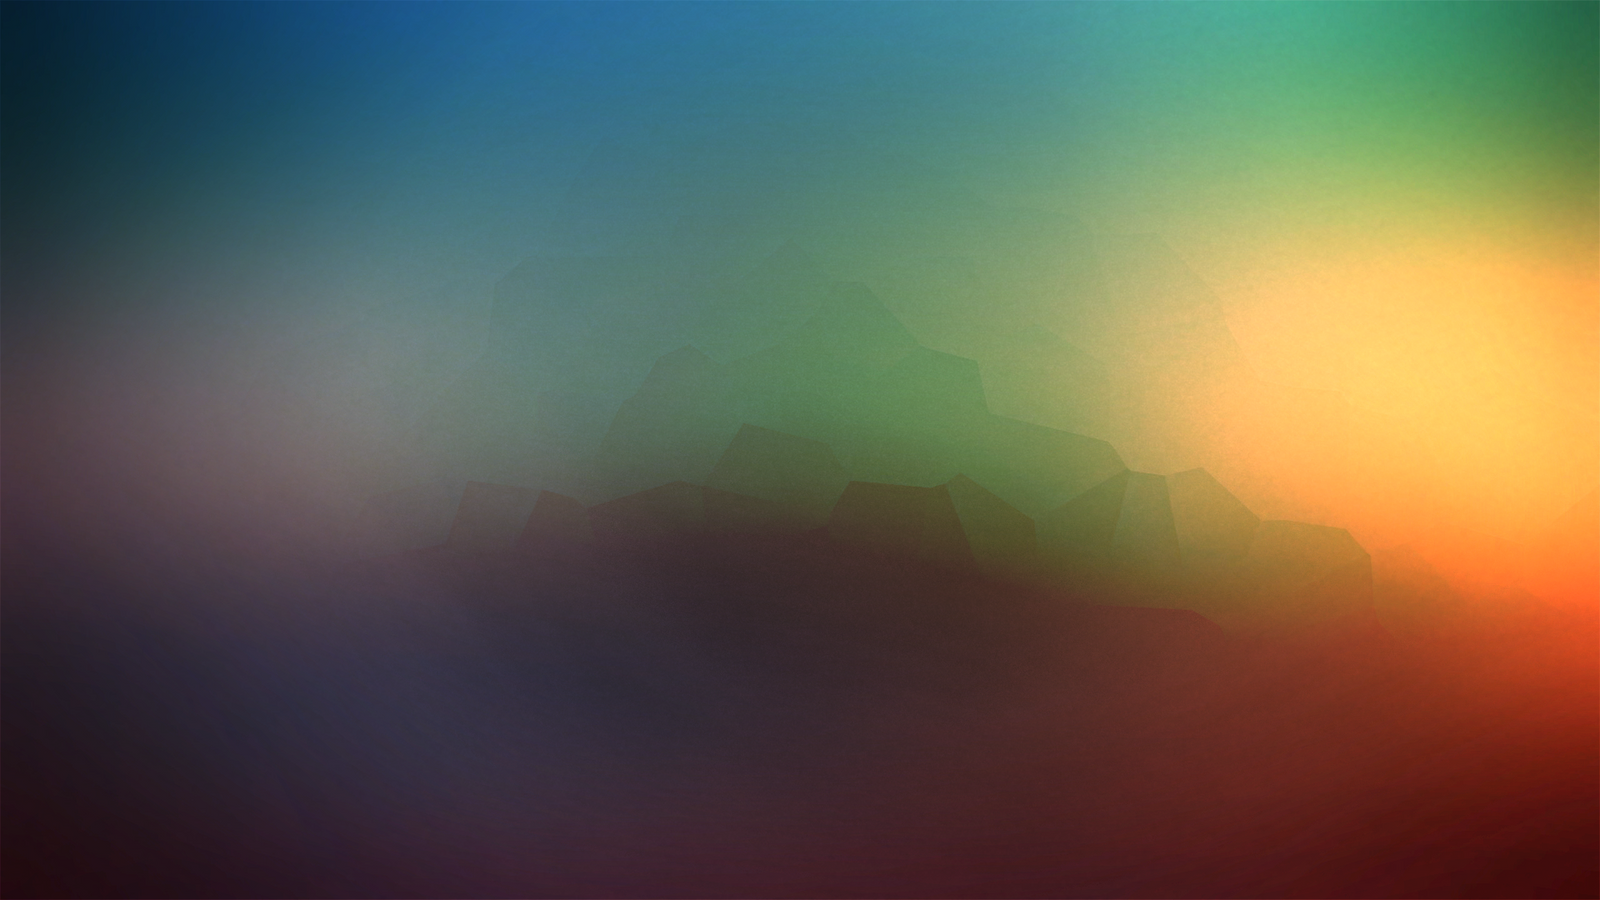 Simple Wallpaper Mountain Minimalistic - mountains___minimal_wallpaper_by_skyehunter5-d745z0r  Photograph_624334.png